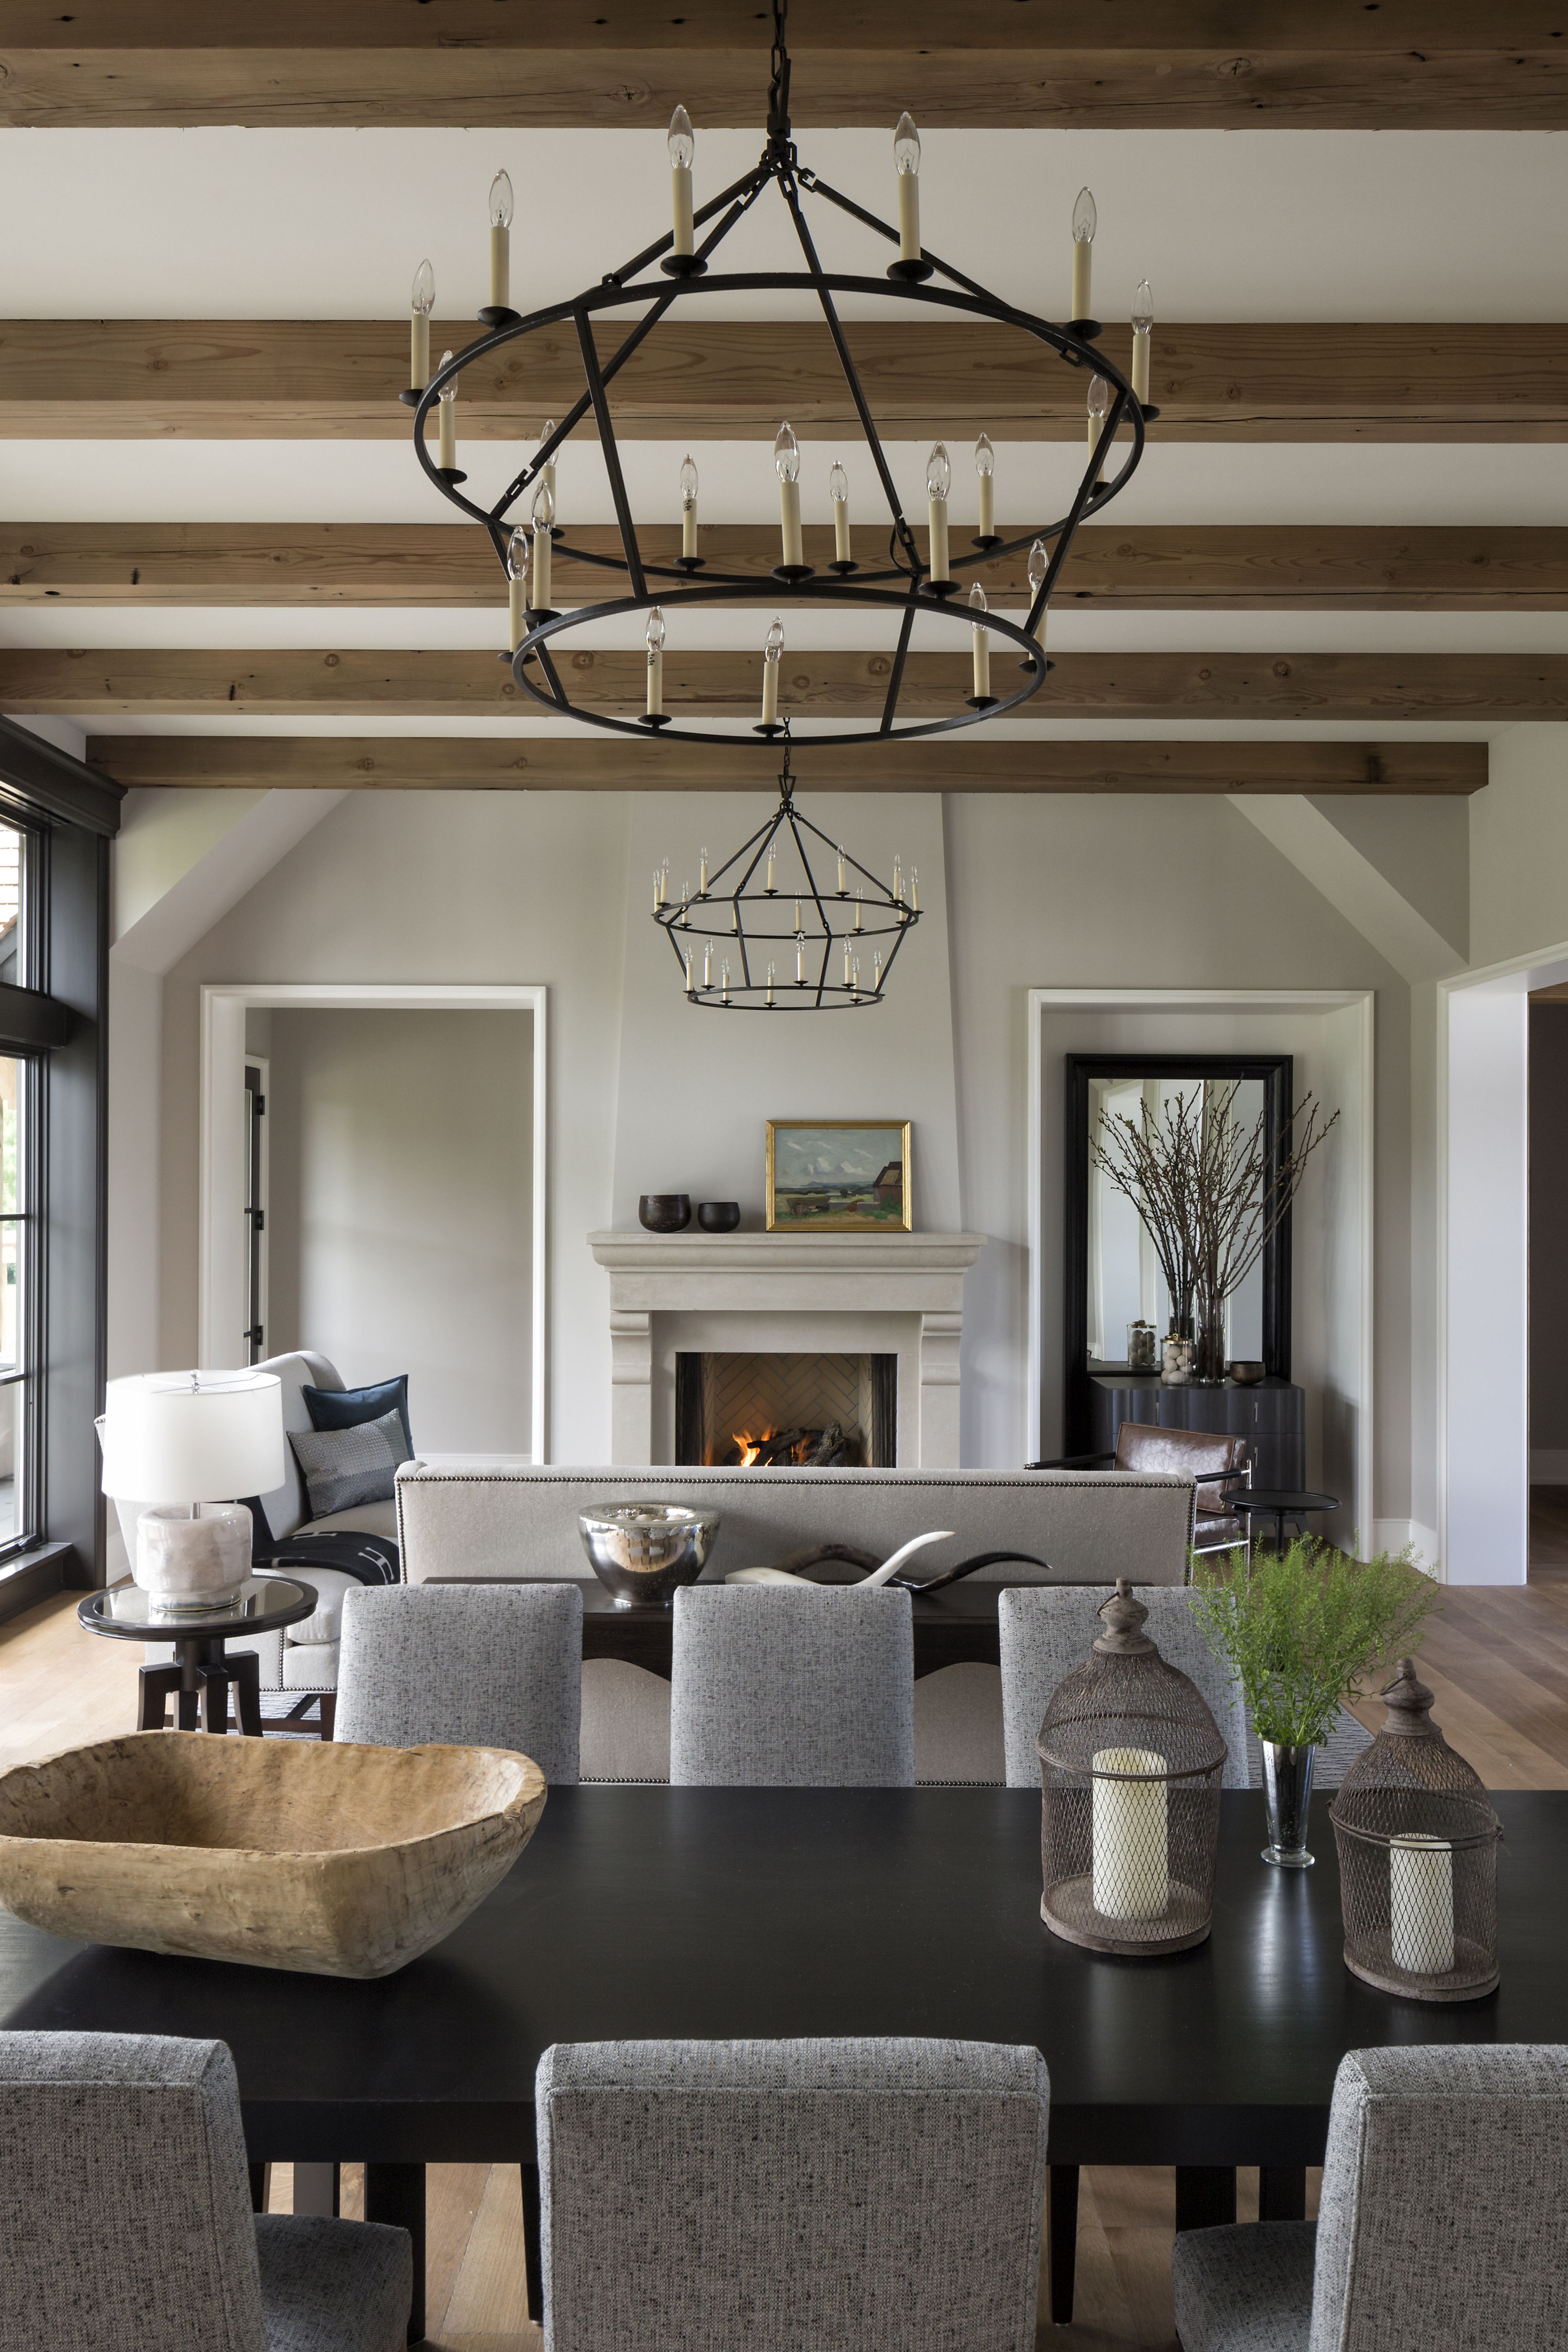 Wood Beams And Lighting In An Artisan Home From Hendel Homes